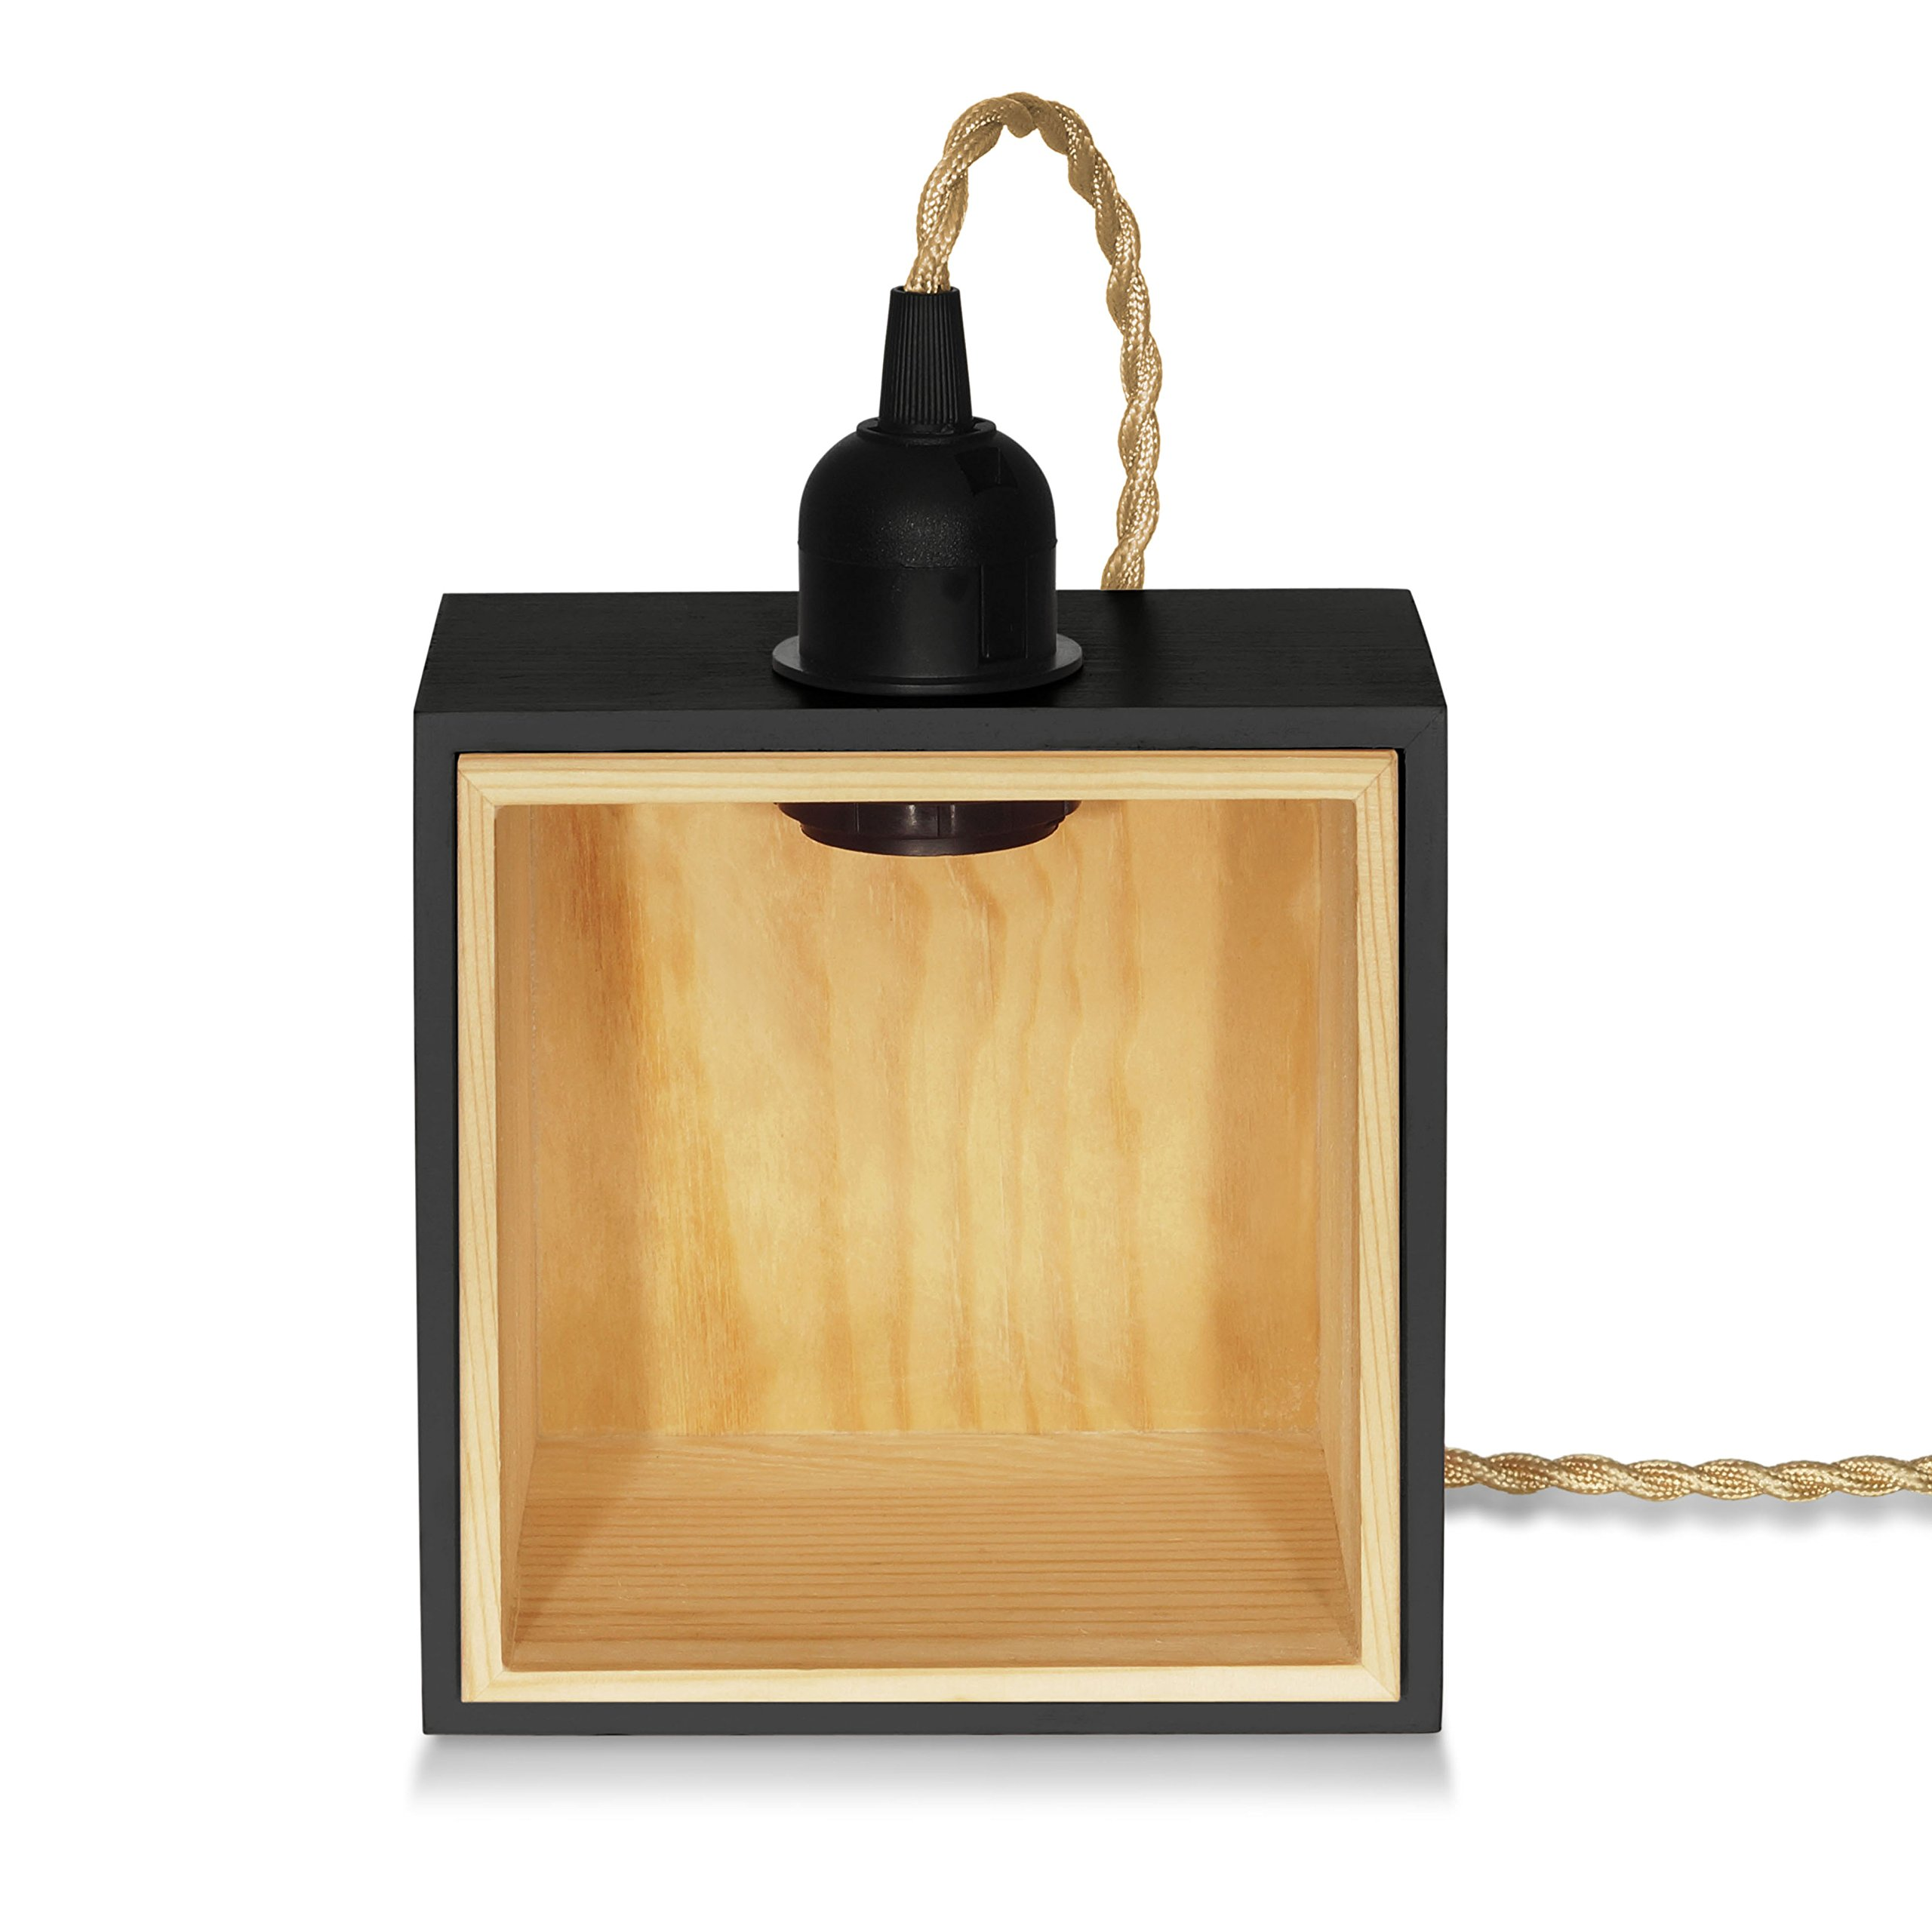 Private Corner Wooden Lamp - Black | Handmade Pine Wood (FSC) | Lamp x 1pc (Light Bulb Not Included) | Special Offer and Product Promotion, Get Free Light Bulb | 1-Year Warranty